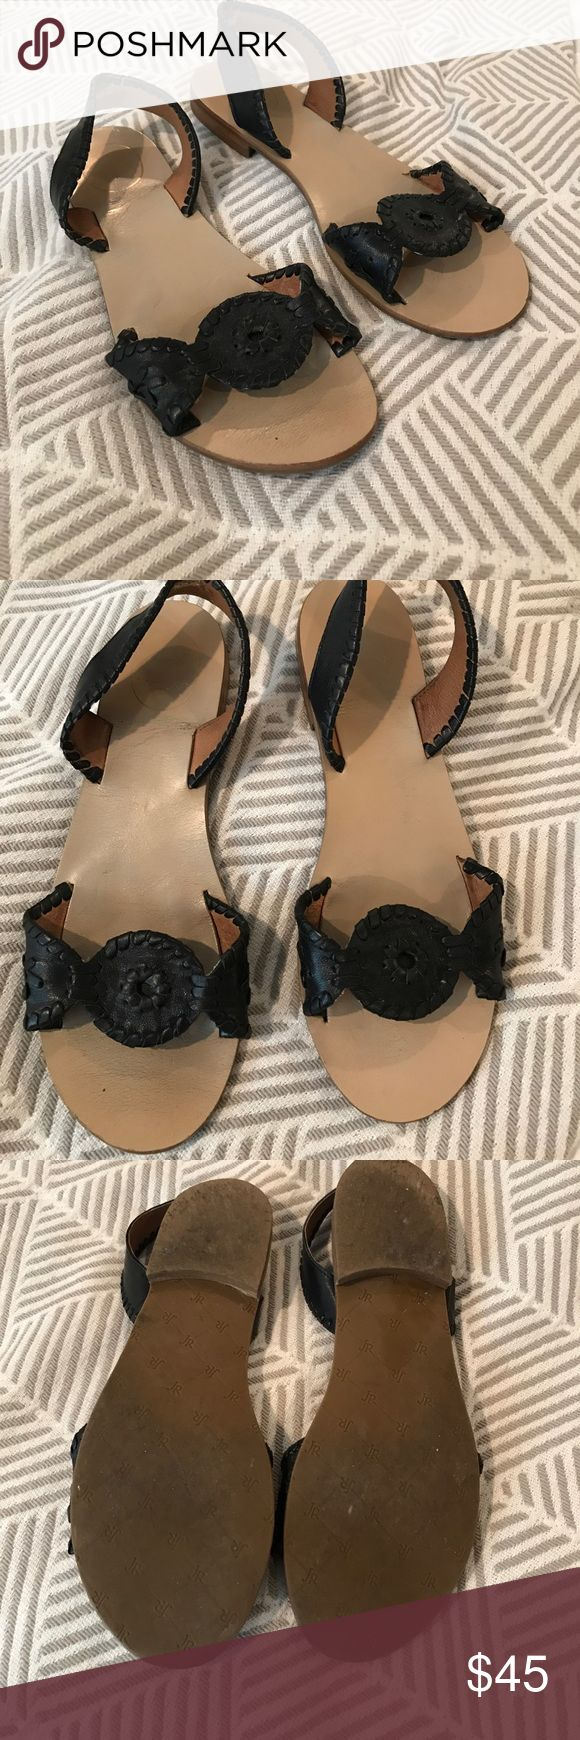 Jack Rogers Black Liliana Slingback Sandals These black Jack Rogers Liliana slingback sandals are gently used and so cute! Perfect for your spring and summer wardrobe!! Jack Rogers Shoes Sandals